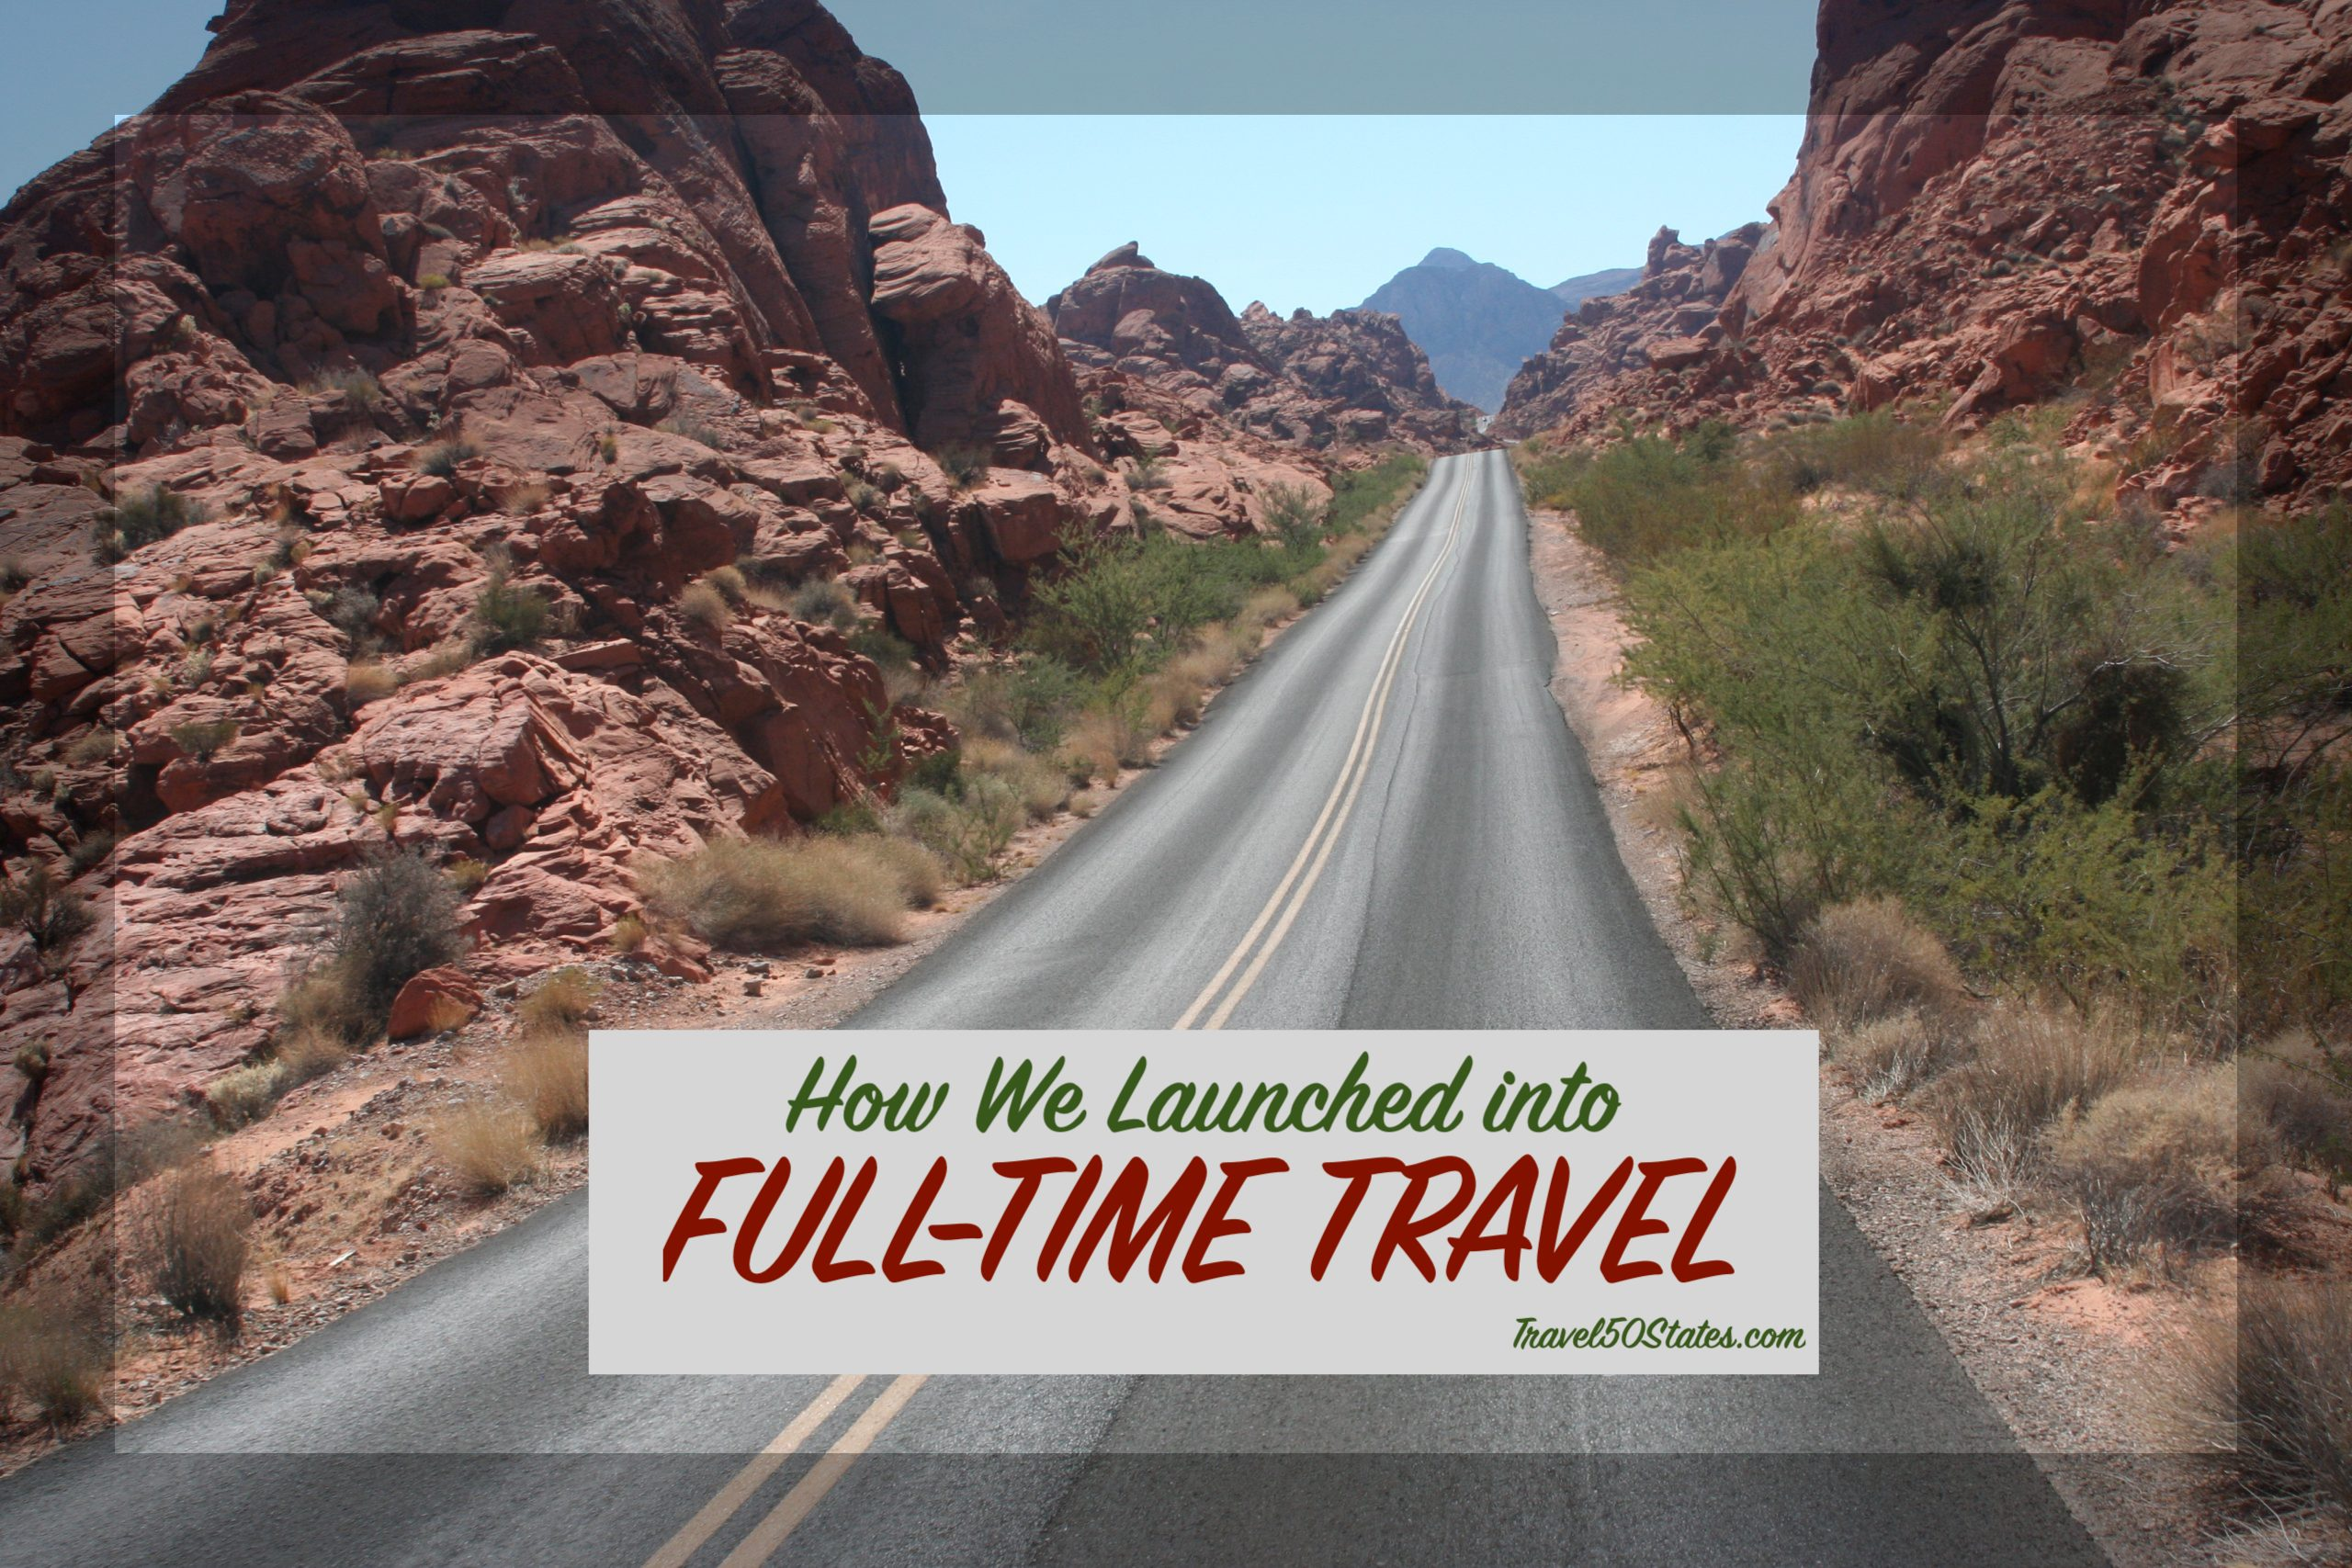 How We Launched into Full-time Travel